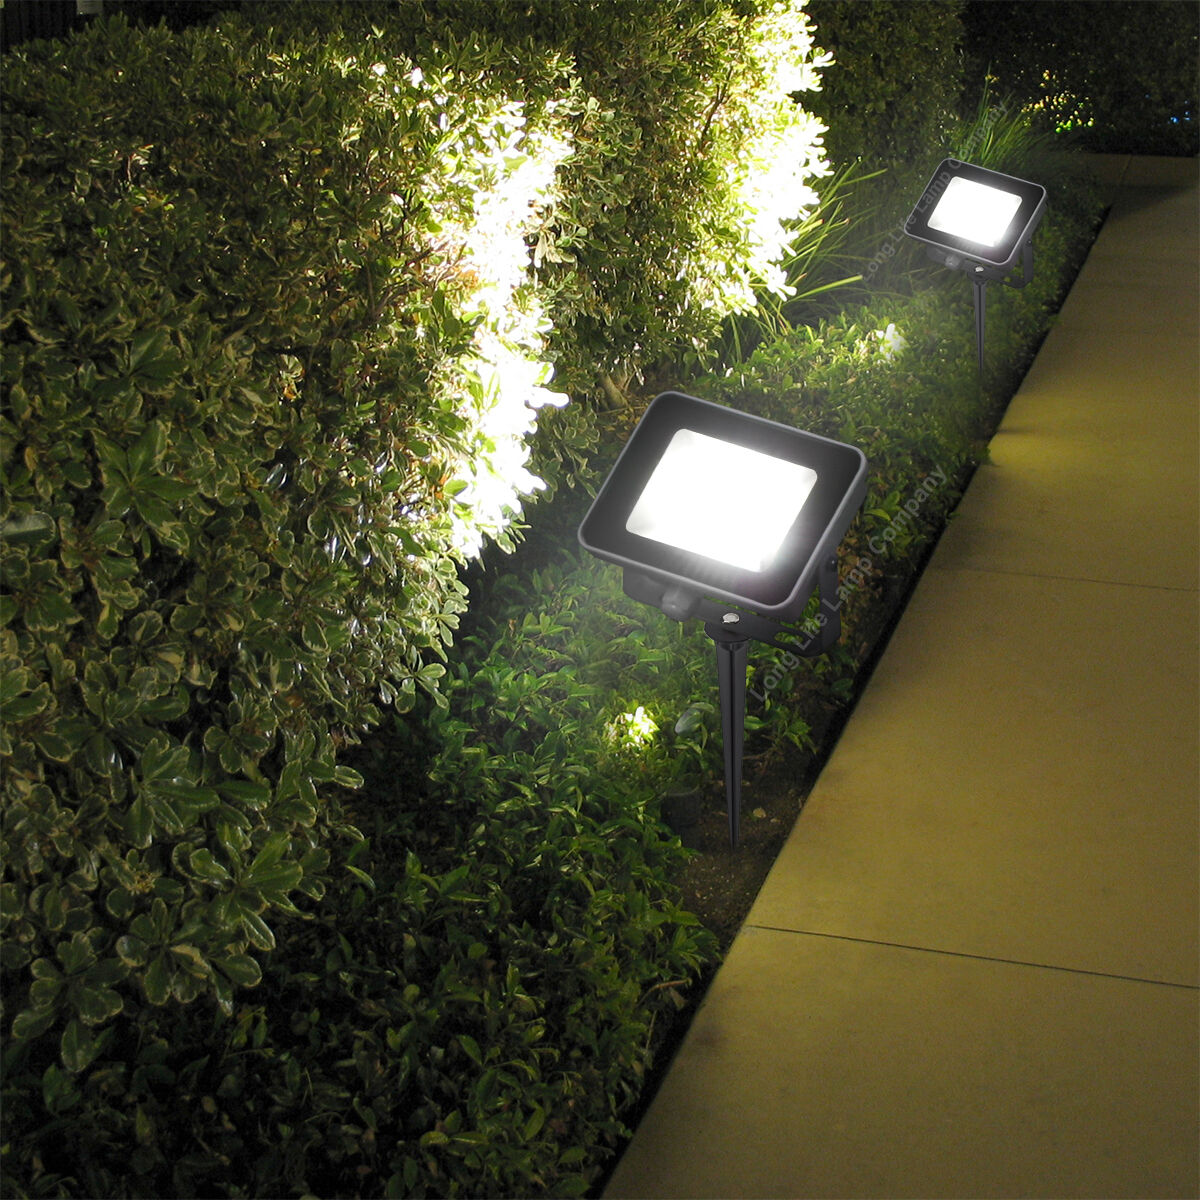 Outdoor Patio Ground Lights: Garden Ground Spike For Floodlights Outdoor Lighting Extra